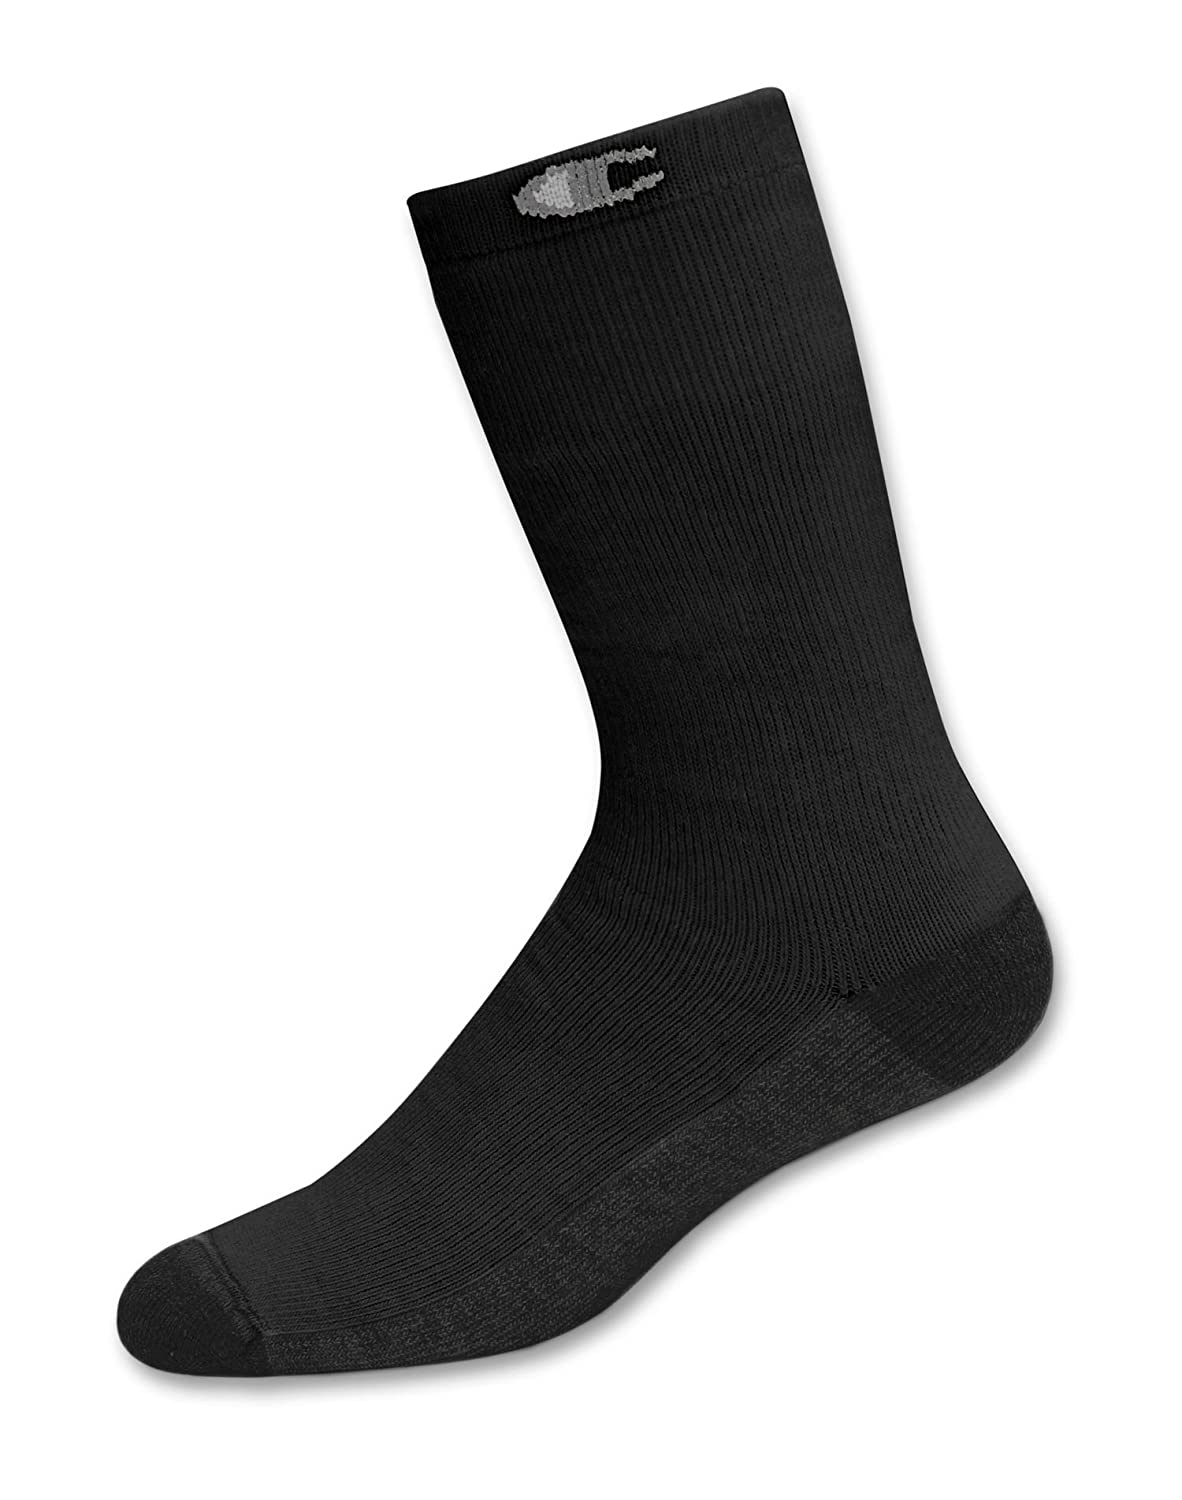 8a8141805dfa Champion Men s 3 Pack Crew Socks